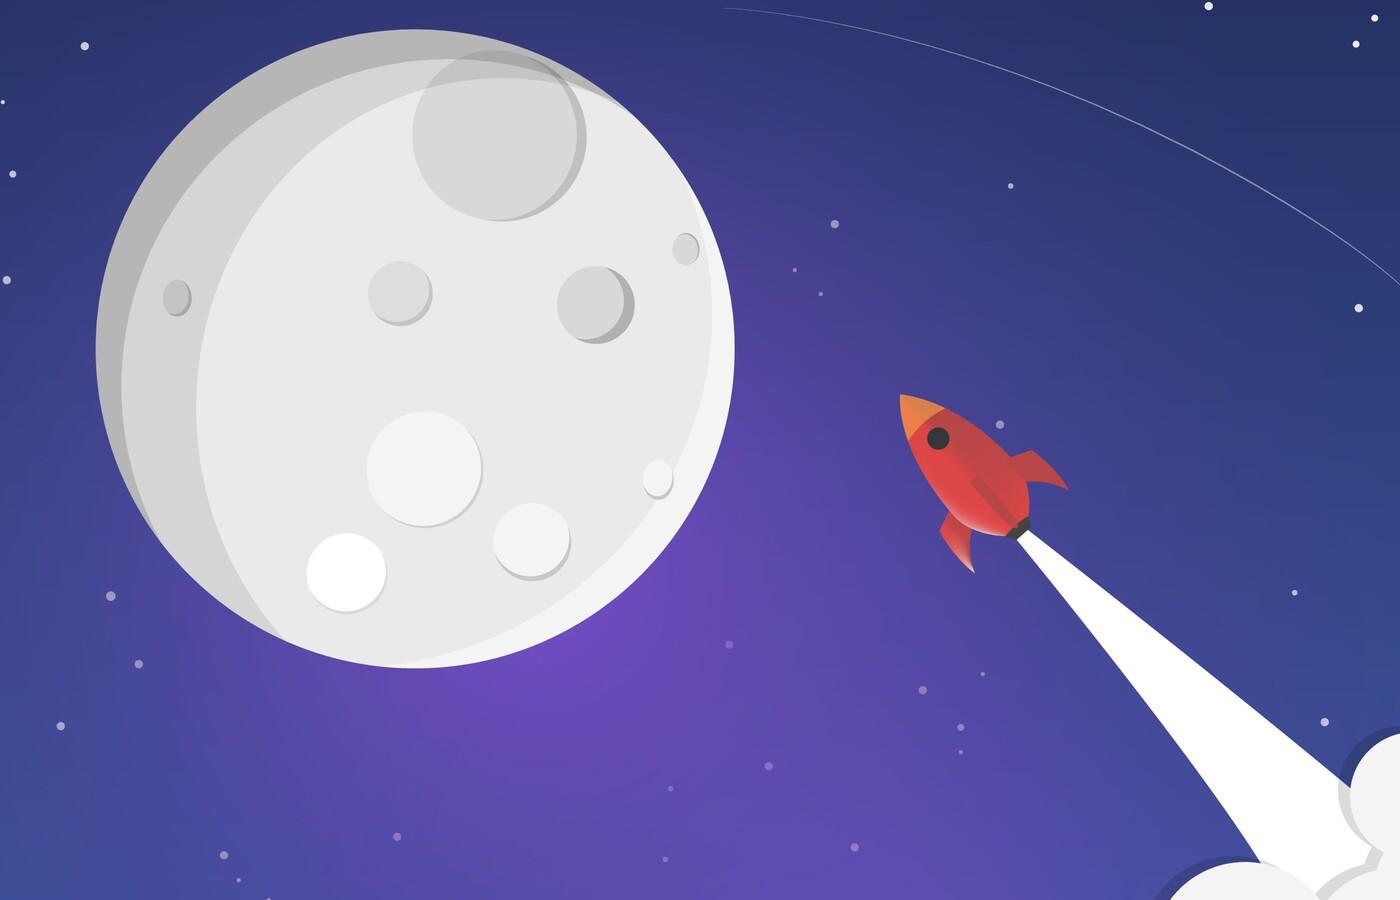 moon-rocket-minimalism-mr.jpg